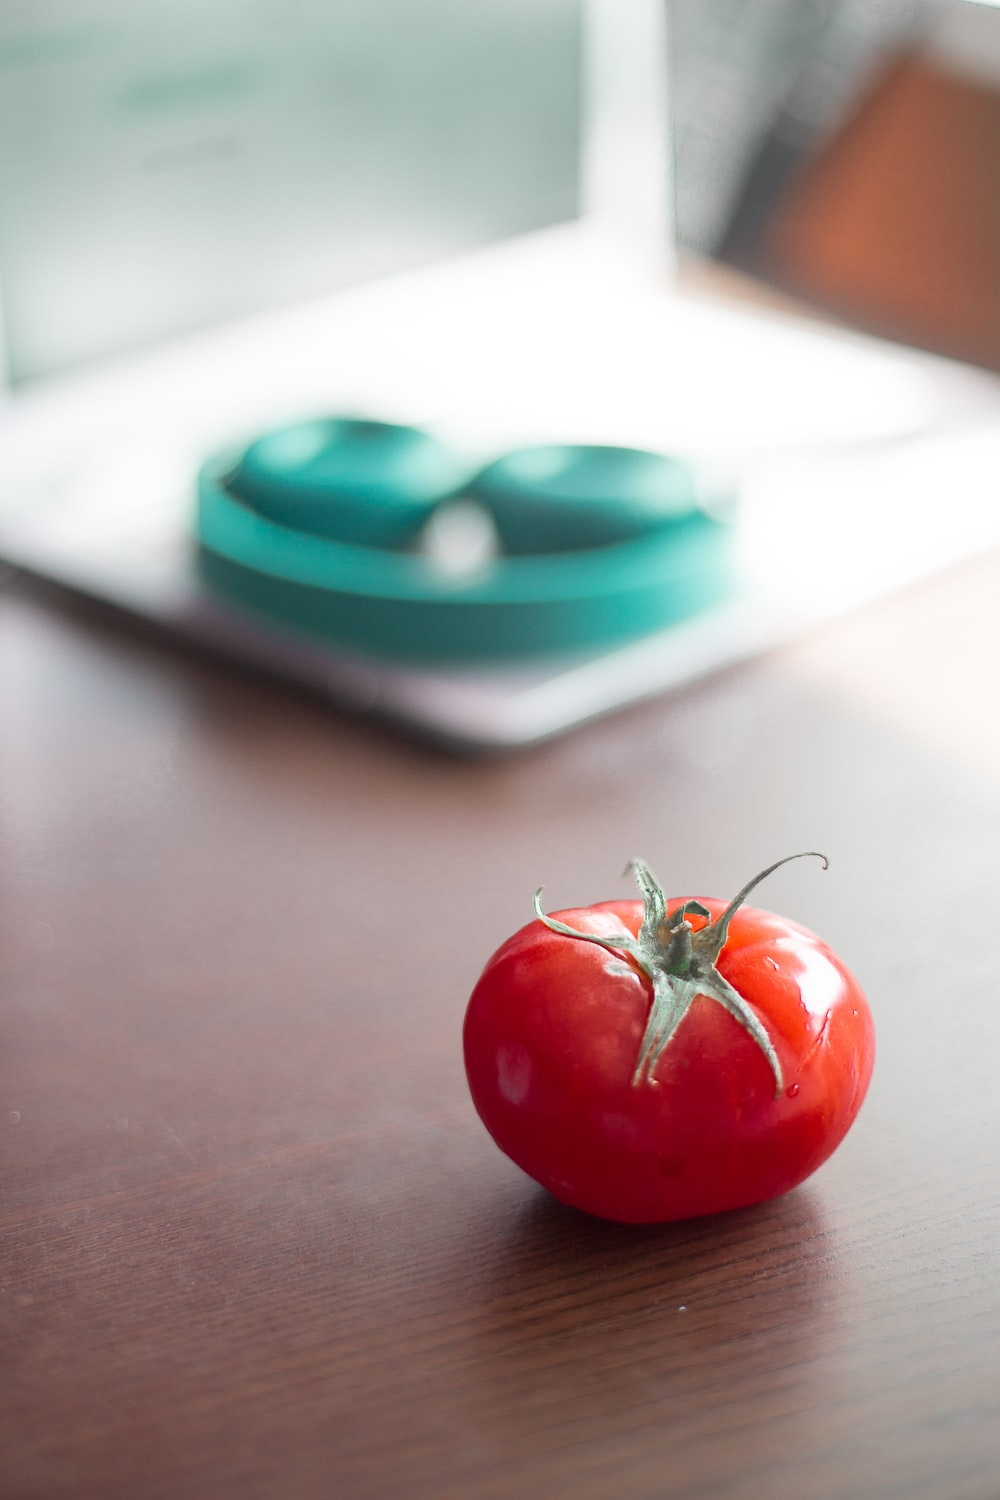 red tomato on brown table